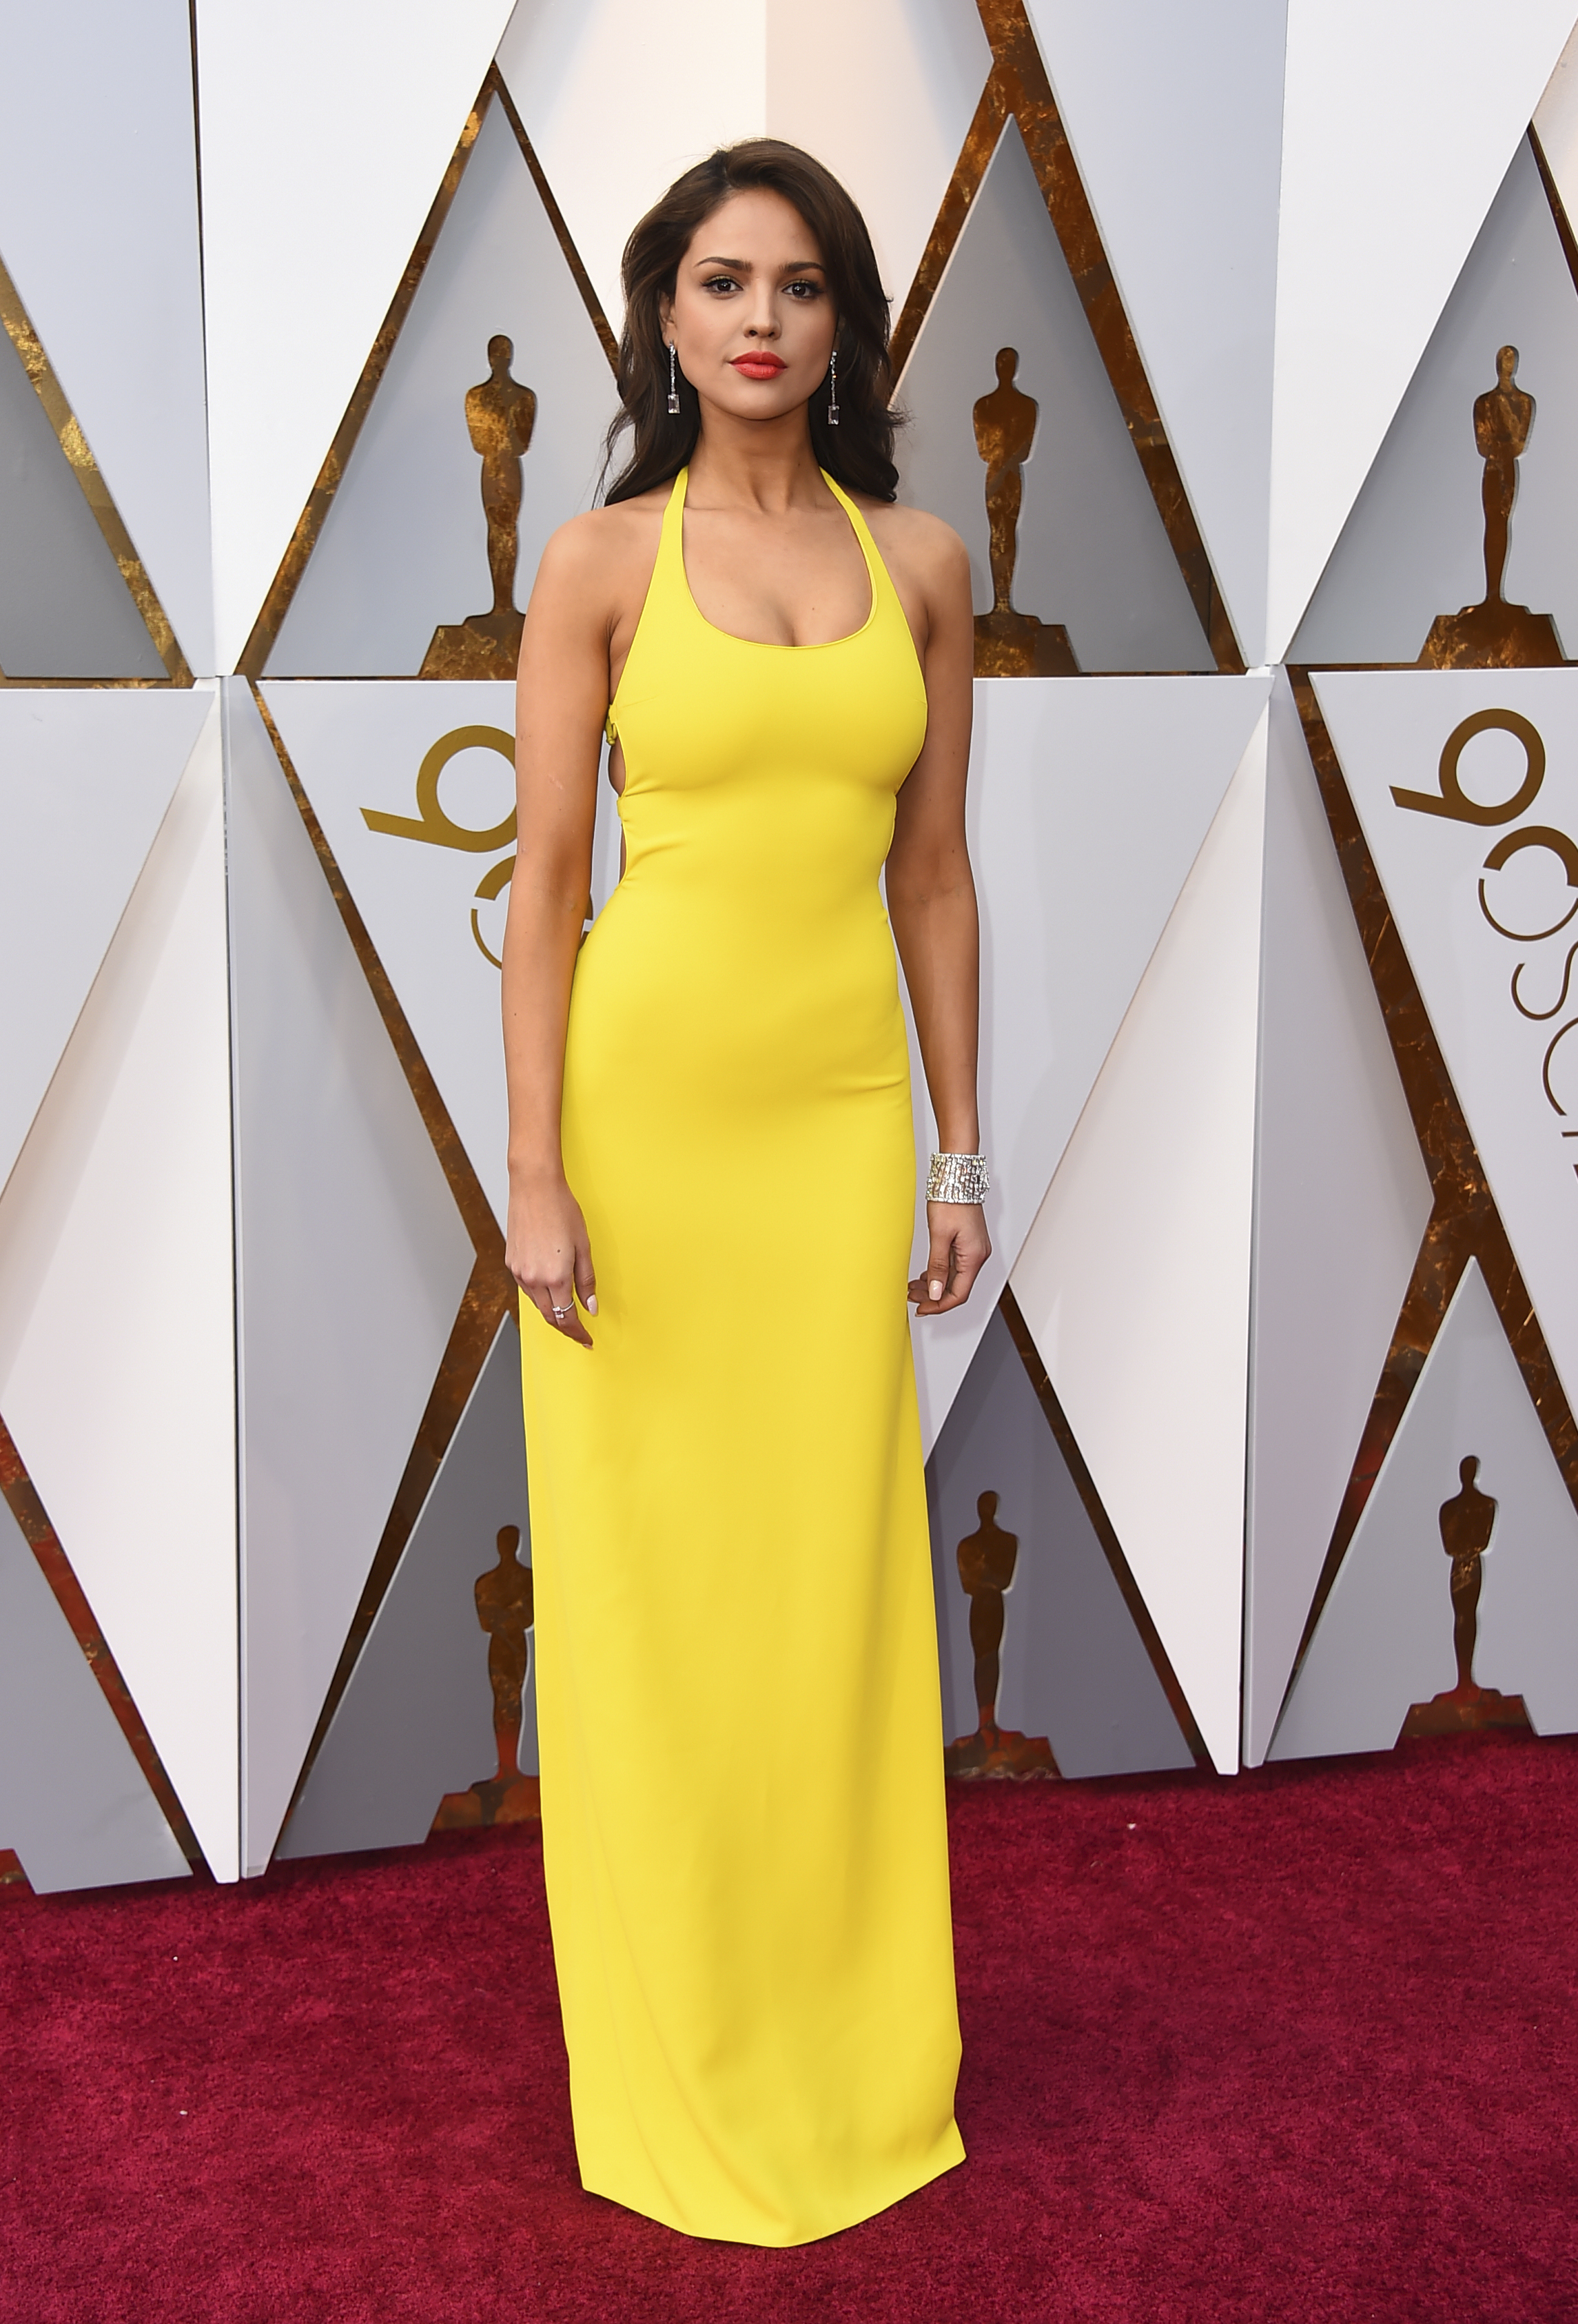 <div class='meta'><div class='origin-logo' data-origin='none'></div><span class='caption-text' data-credit='Jordan Strauss/Invision/AP'>Eiza Gonzalez arrives at the Oscars on Sunday, March 4, 2018, at the Dolby Theatre in Los Angeles.</span></div>